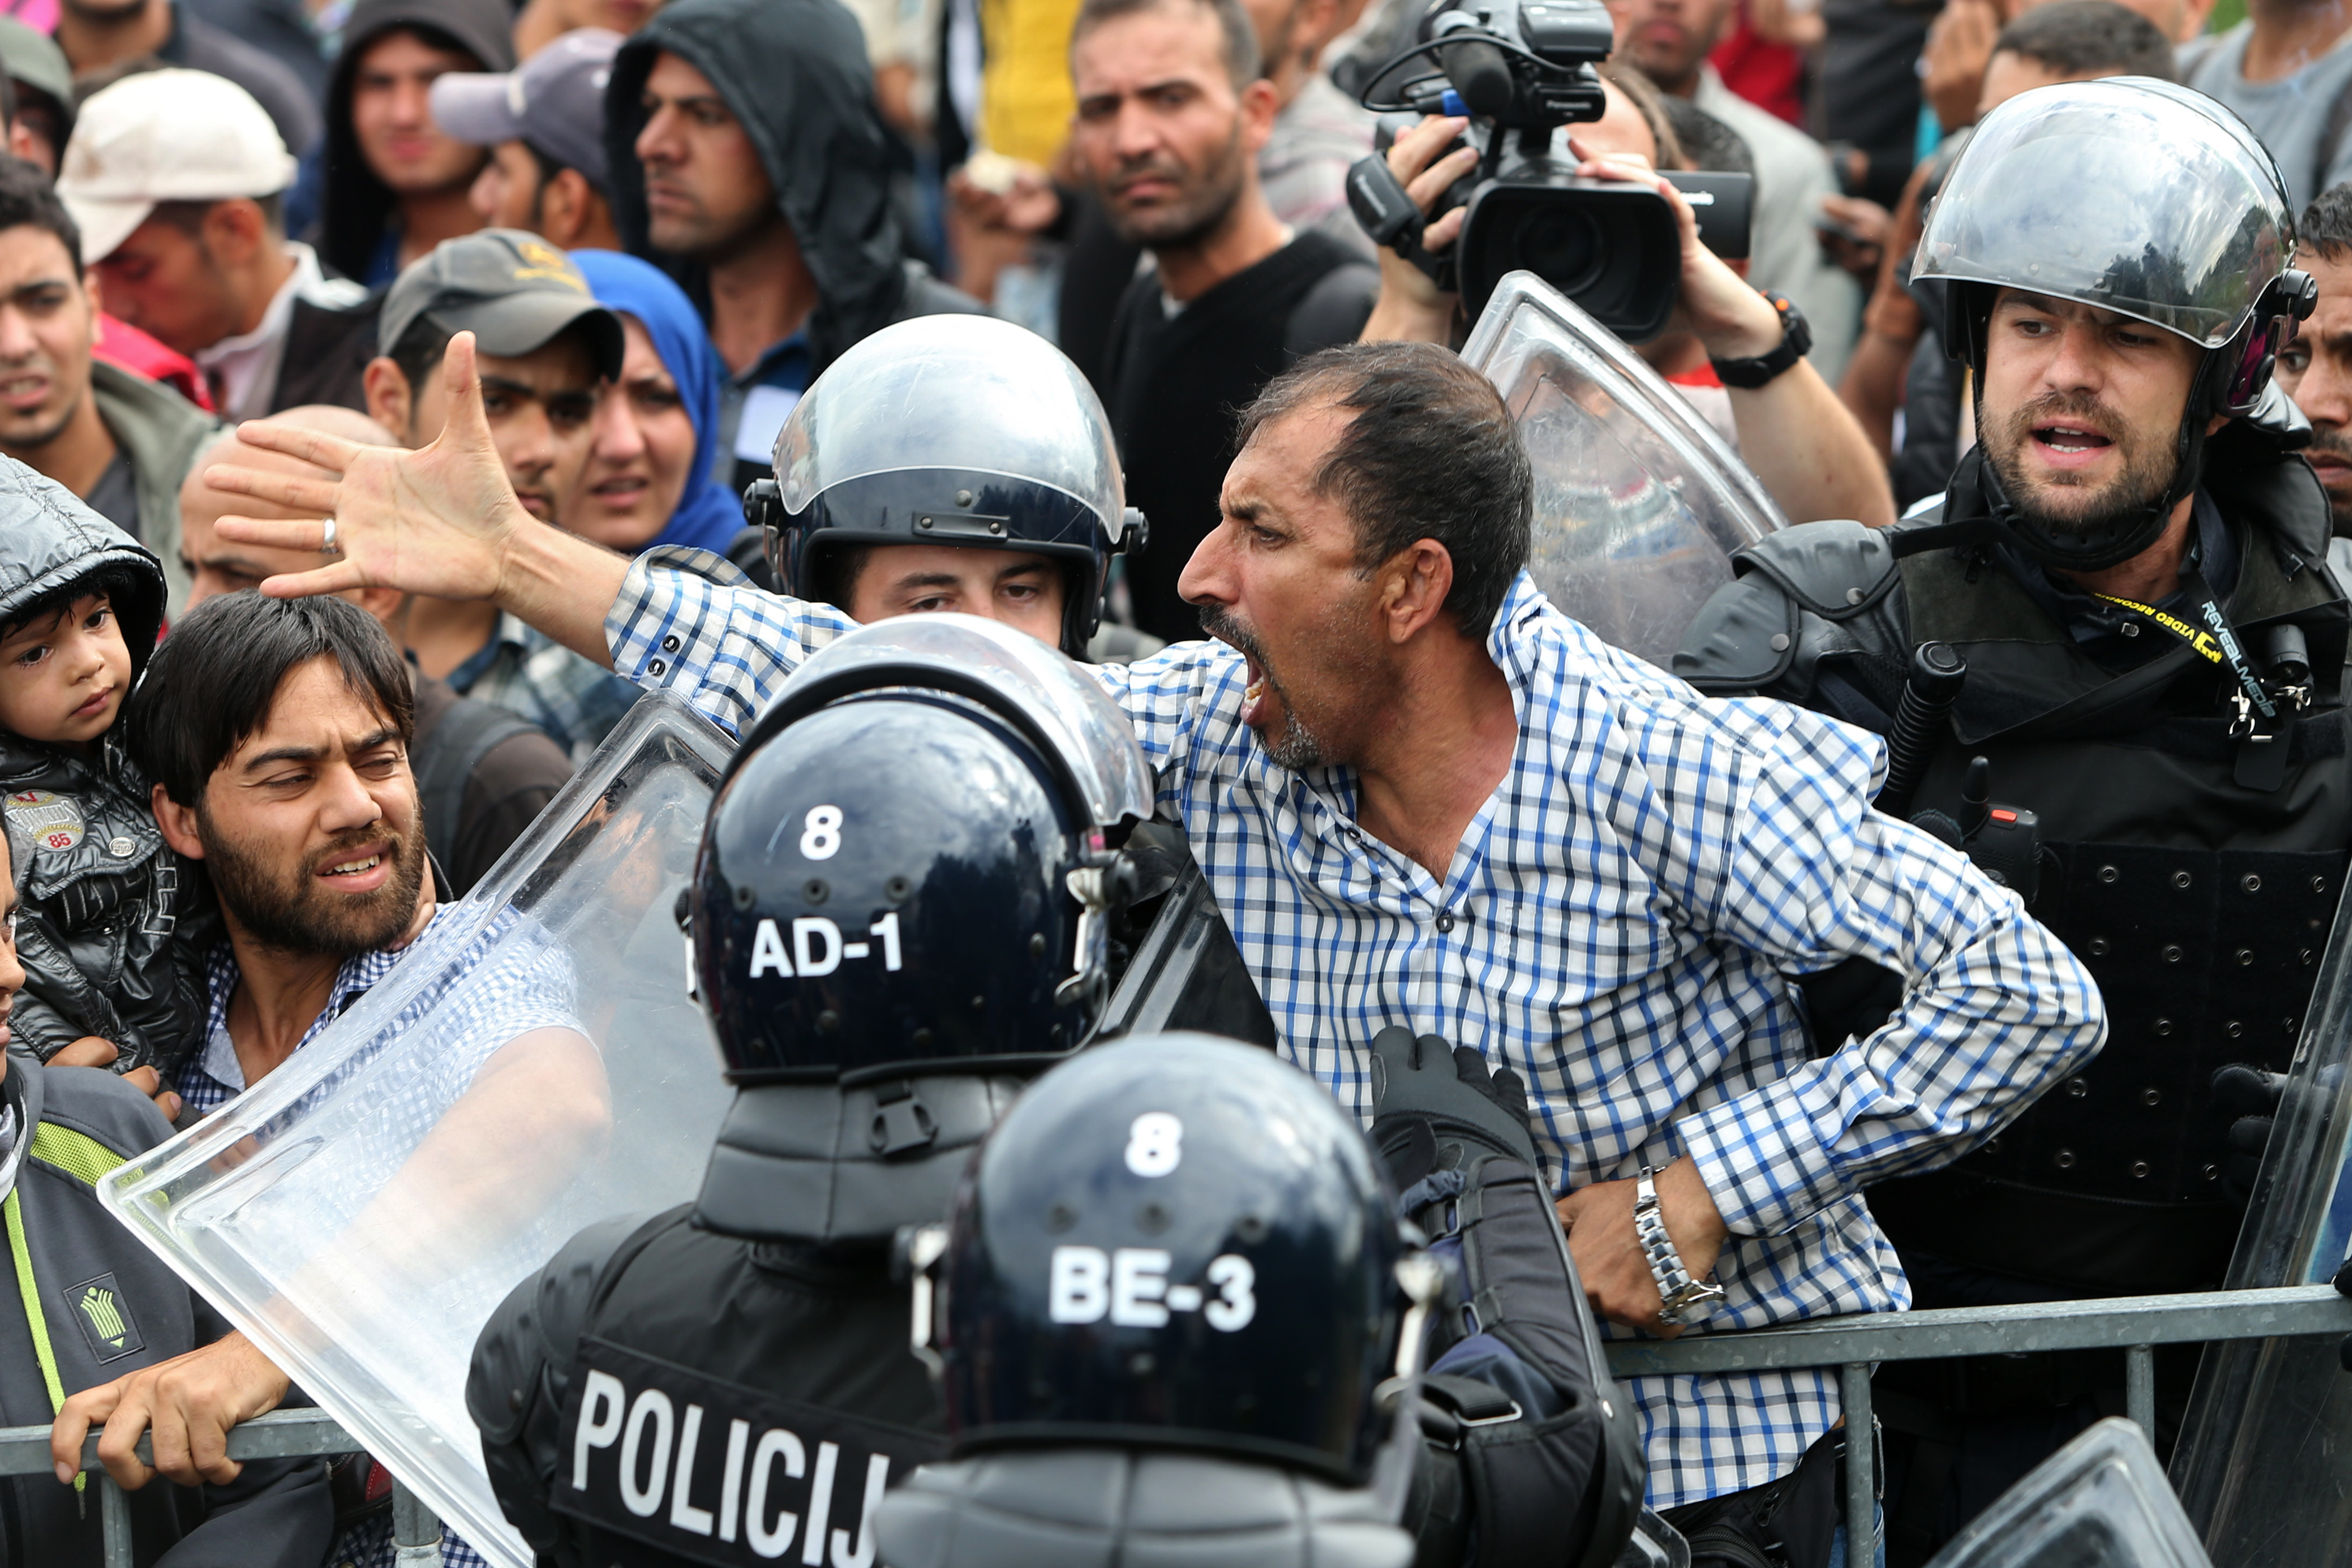 A migrant man reacts as he is surrounded by Slovenian police at the Slovenia-Croatia border crossing in Rigonce, Slovenia, Sept. 19, 2015.